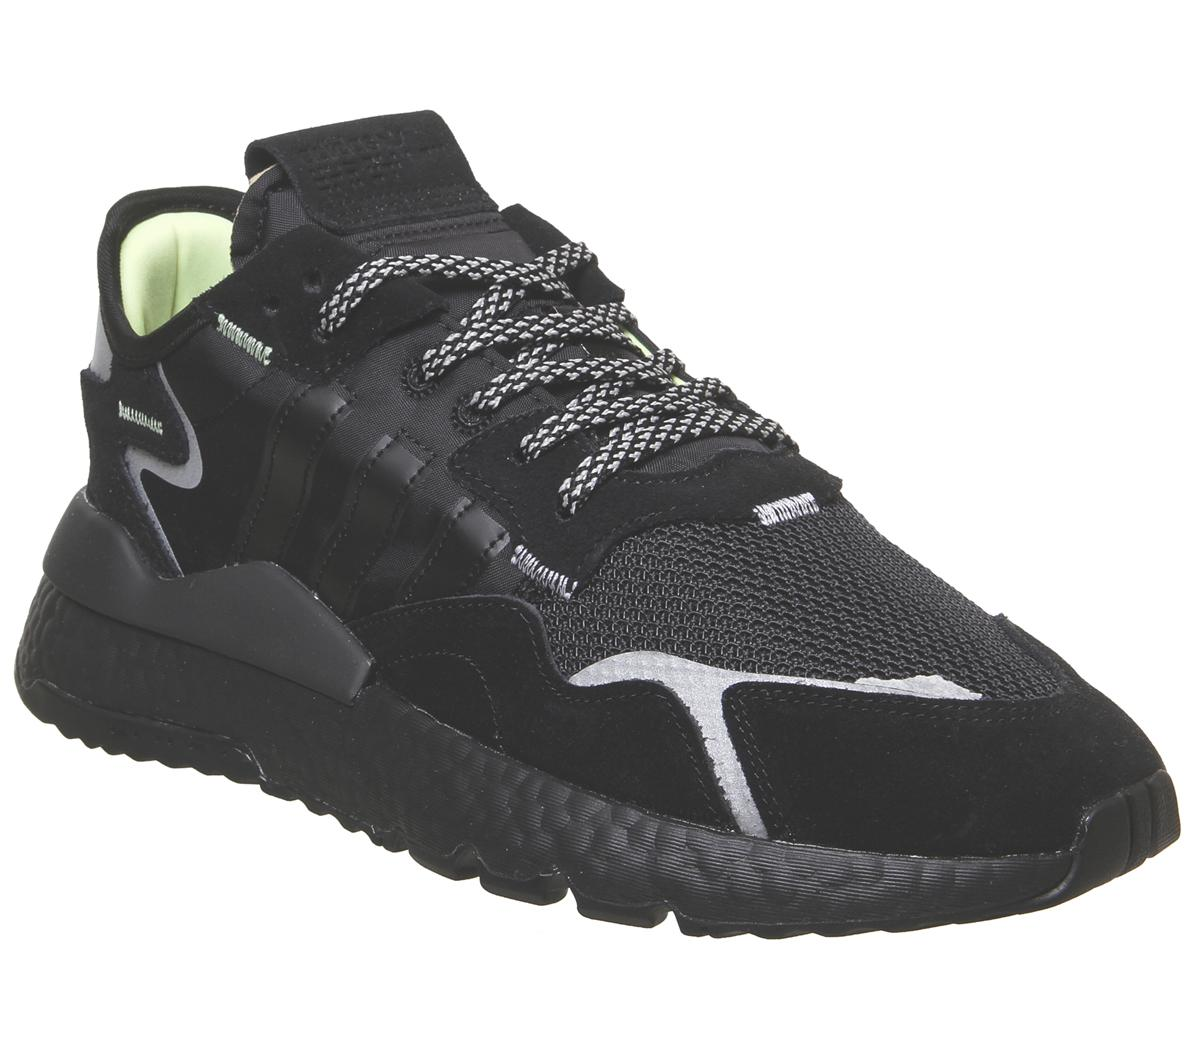 adidas Nite Jogger Boost Trainers Core